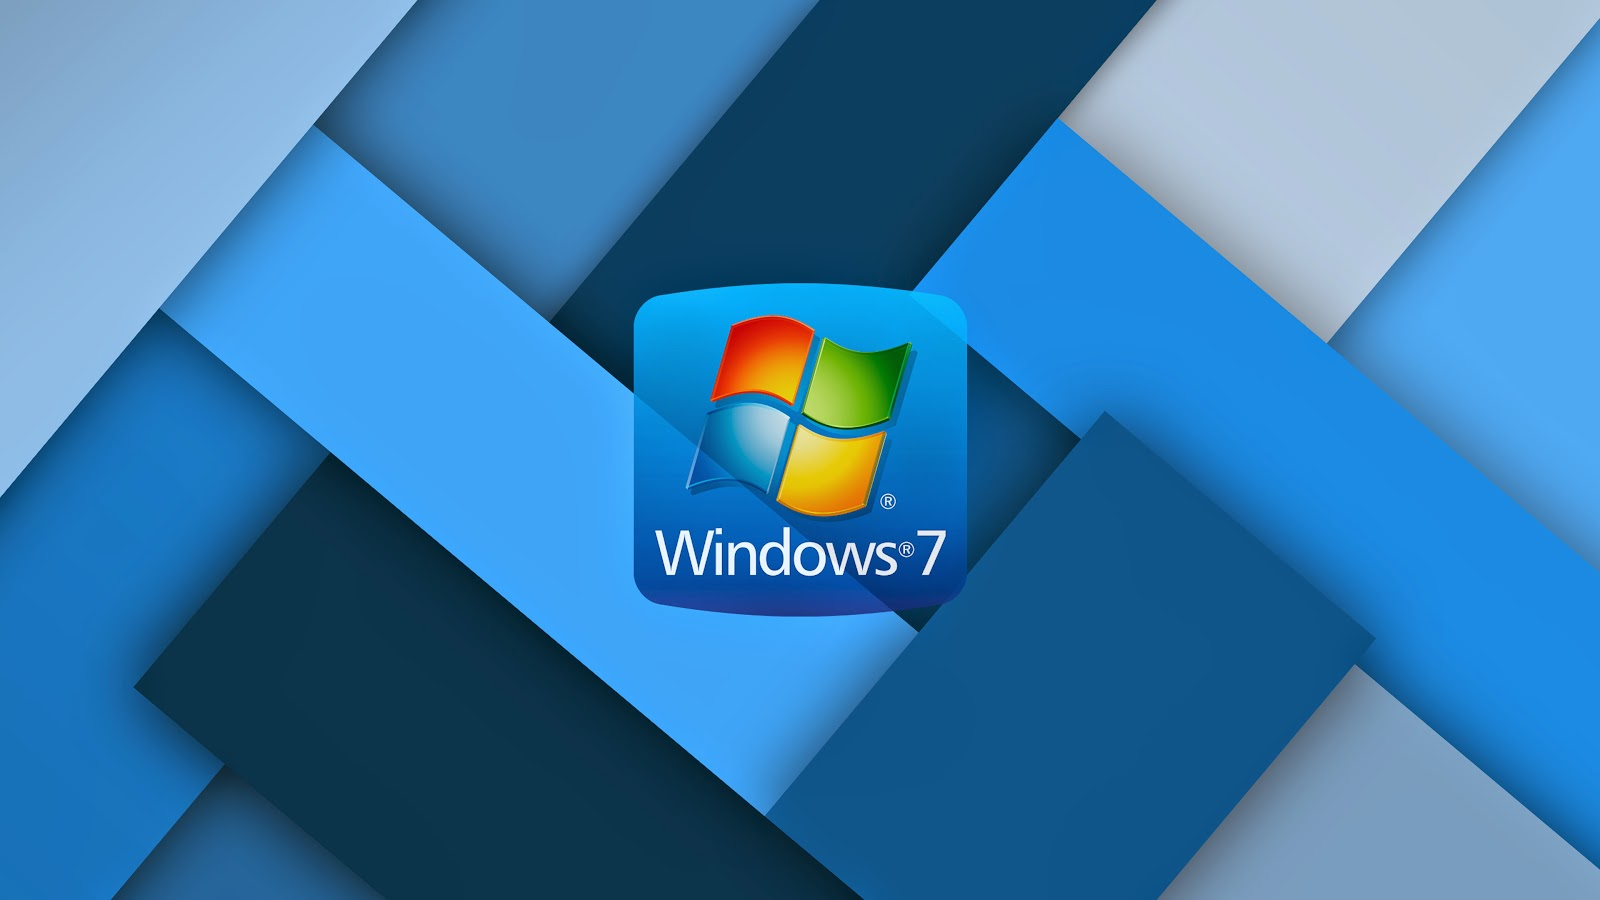 Blauen Windows 7 wallpaper